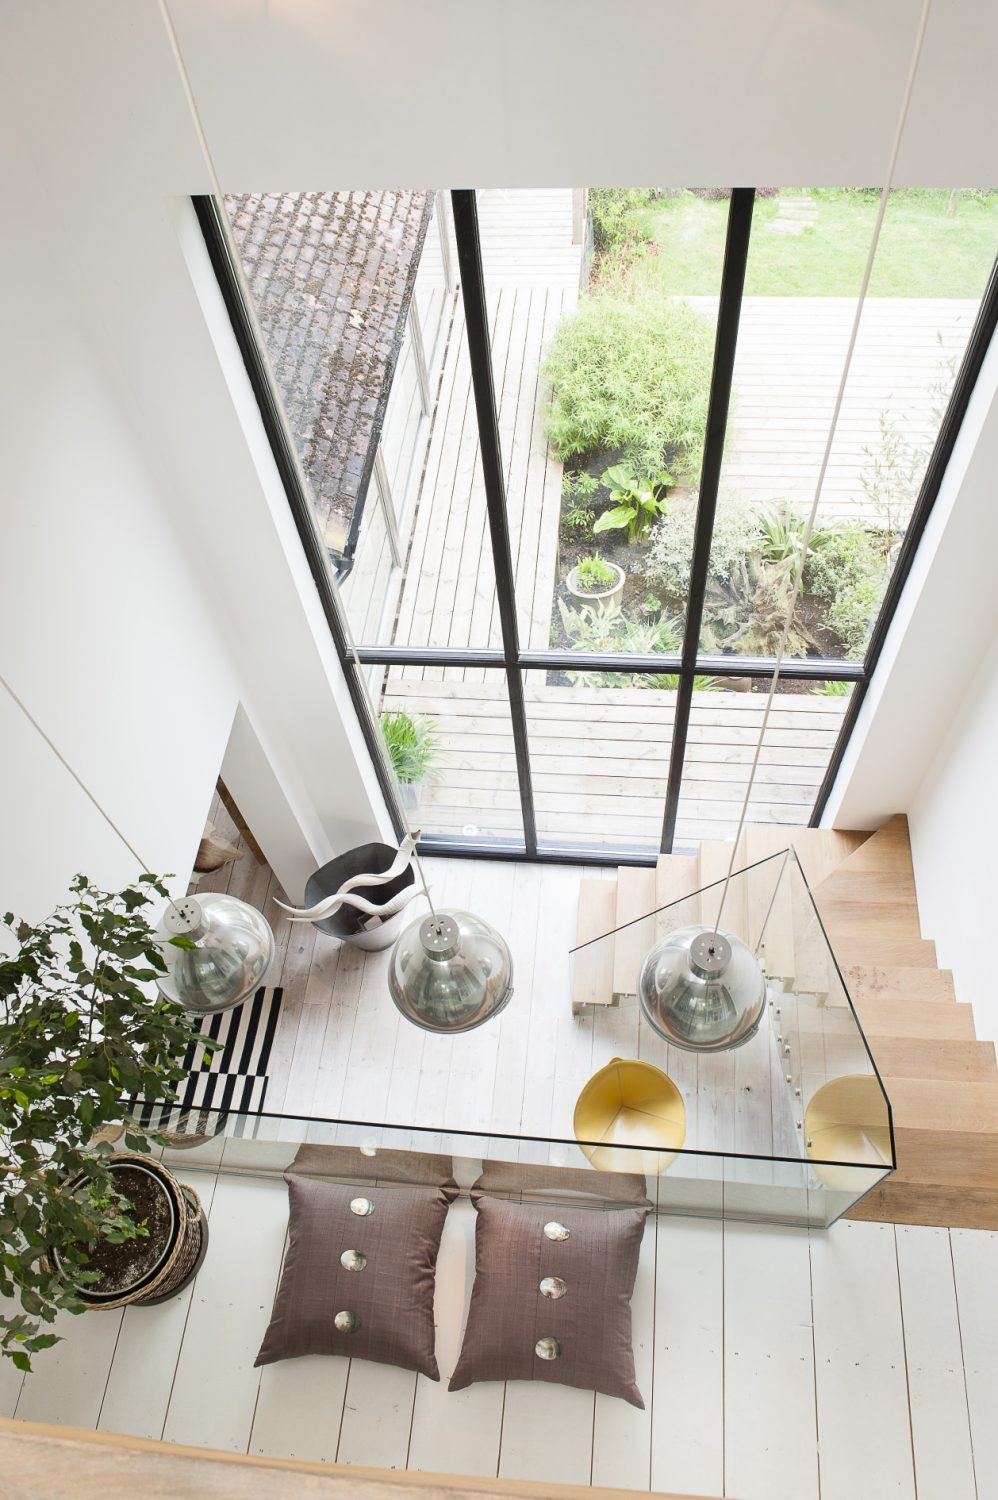 A glass banistered gallery looks down over the living space and through a glass wall that extends from the floor to the apex of the roofA glass banistered gallery looks down over the living space and through a glass wall that extends from the floor to the apex of the roof